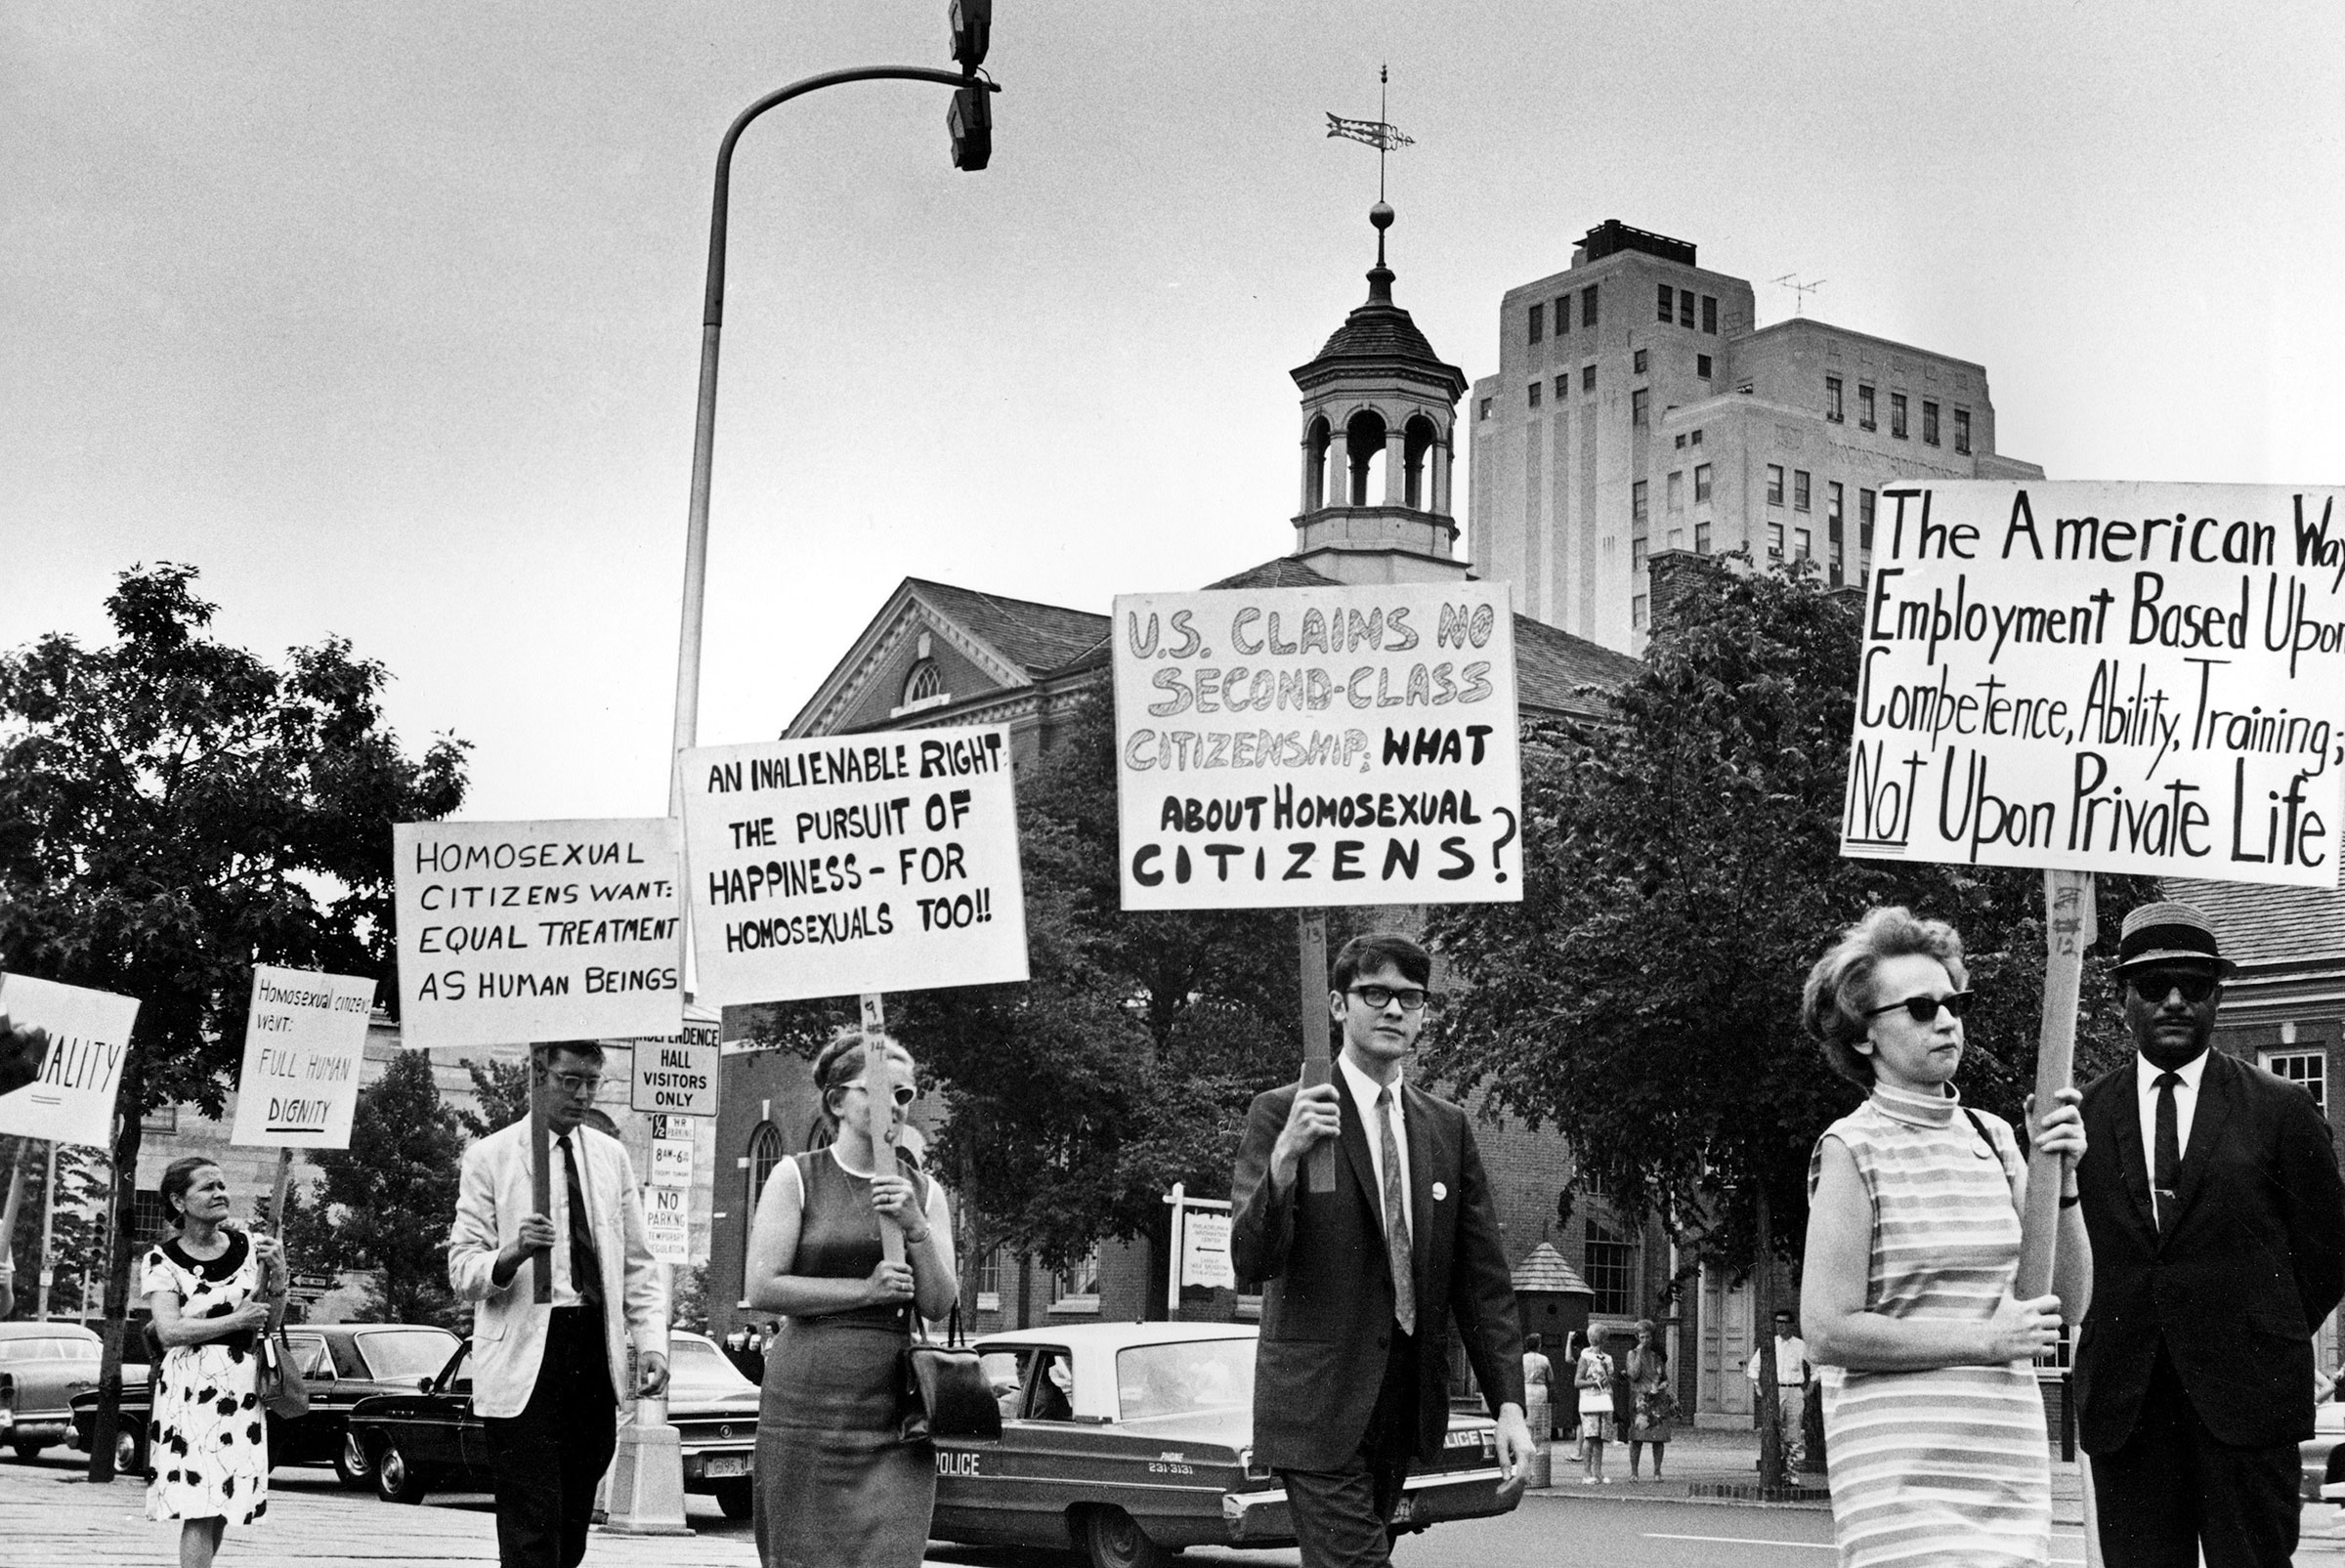 Demonstrators carry signs calling for protection of the LGBTQ community from discrimination as they march in a picket line in front of Independence Hall in Philadelphia on July 4, 1967.